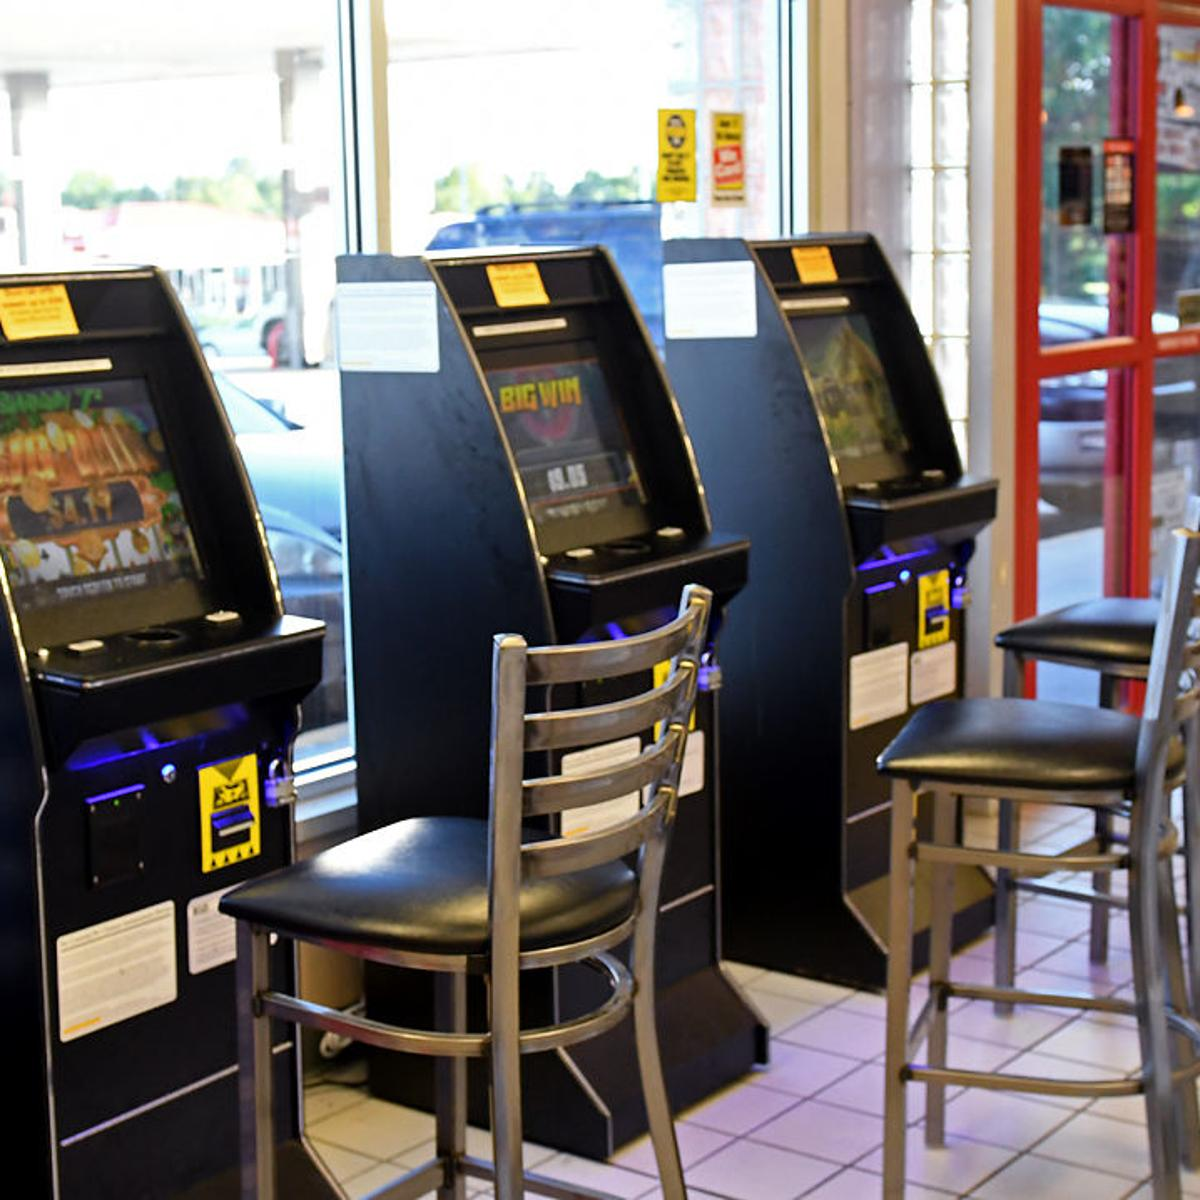 Unregulated gaming machines spreading throughout Columbia